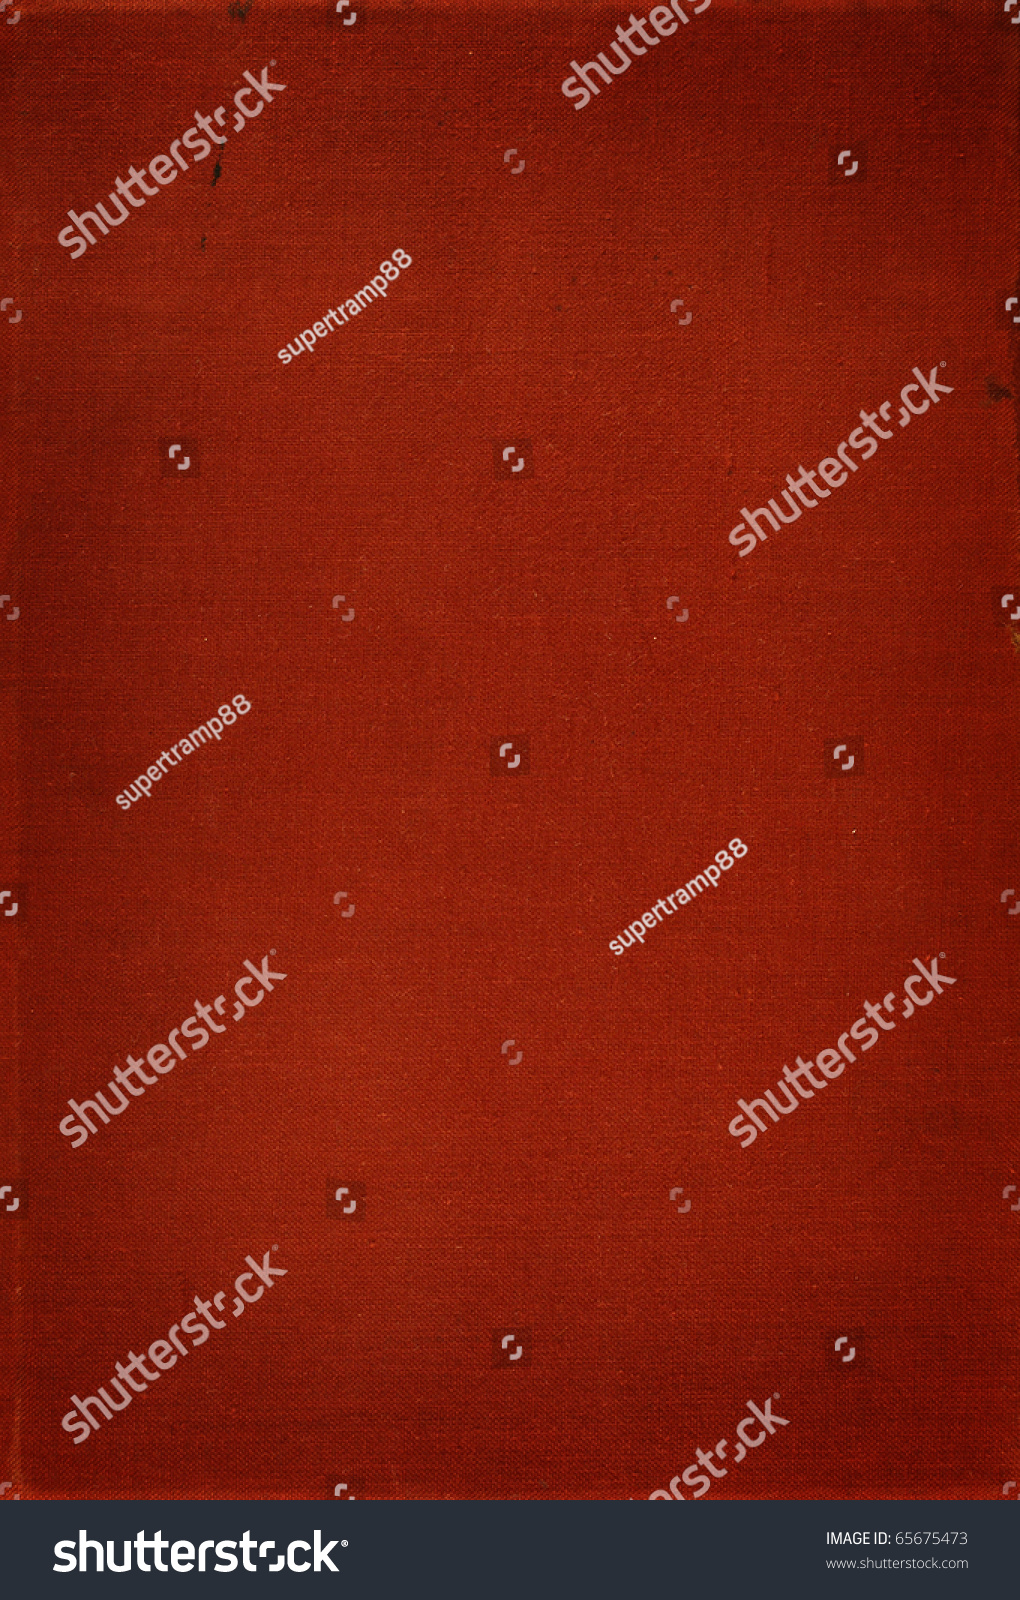 Red Book Cover Texture ~ Red book texture stock photo shutterstock